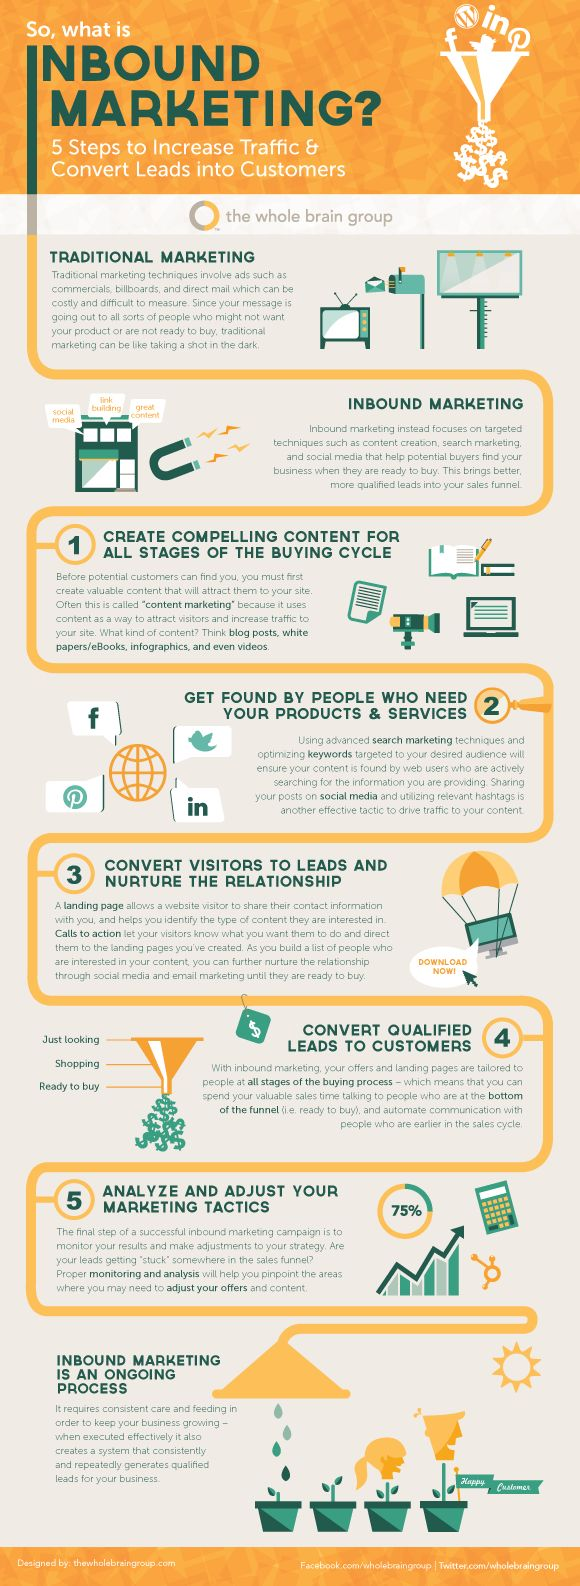 So what is Inbound Marketing? Increase traffic, convert visitors to customers…